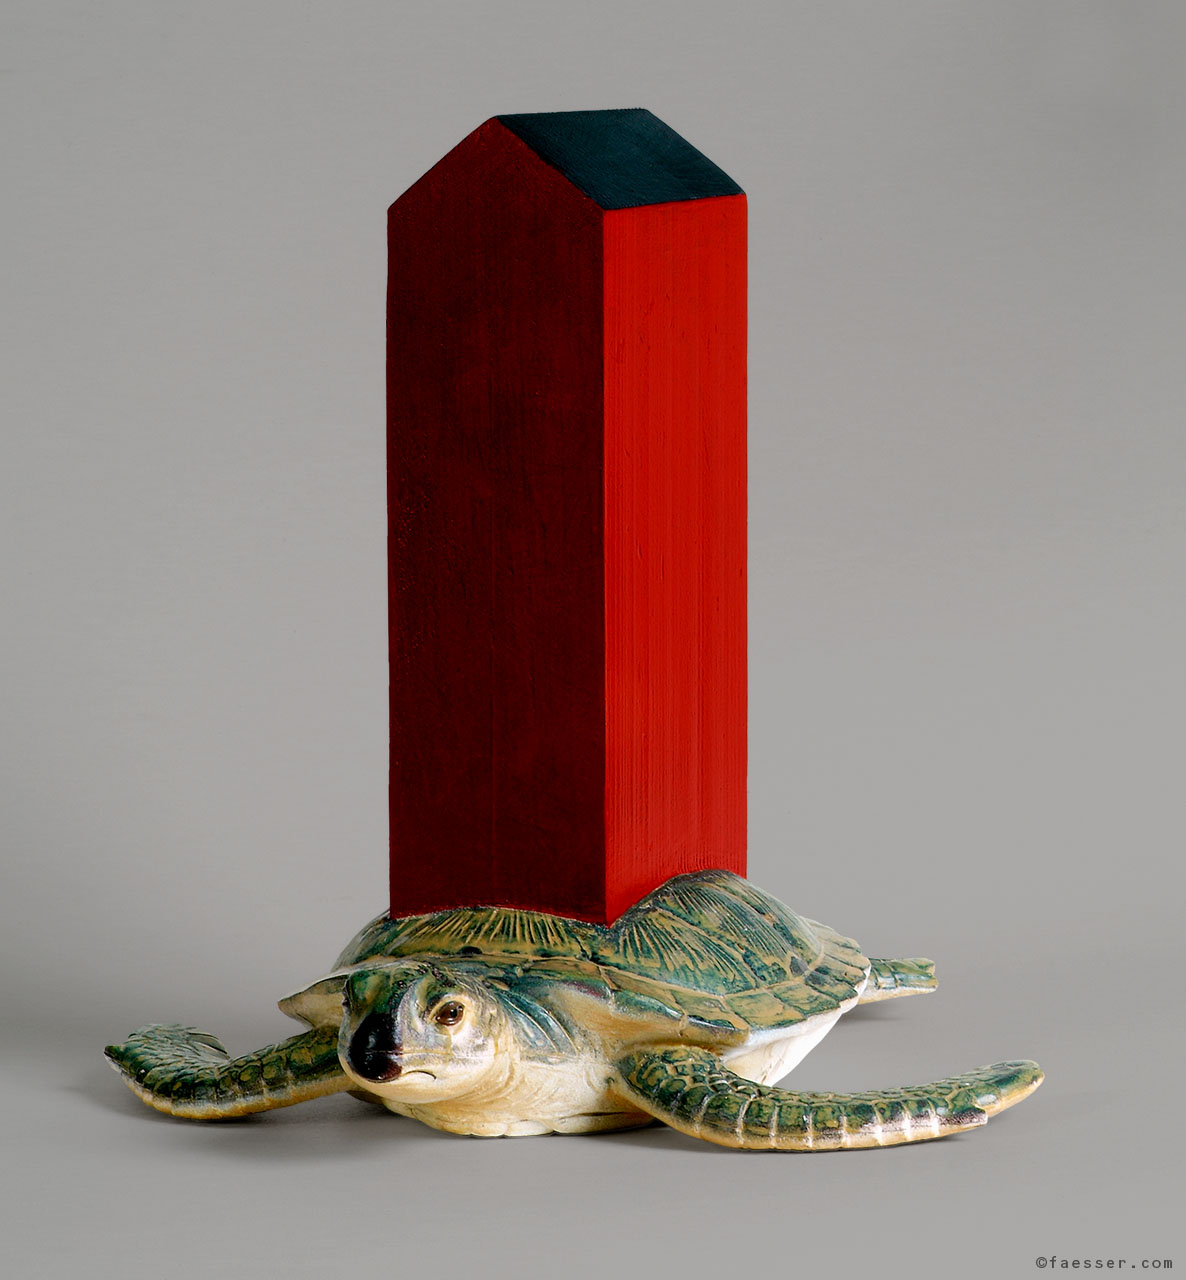 A turtle is carrying a house on his shell; artist Roland Faesser, sculptor and painter 1998